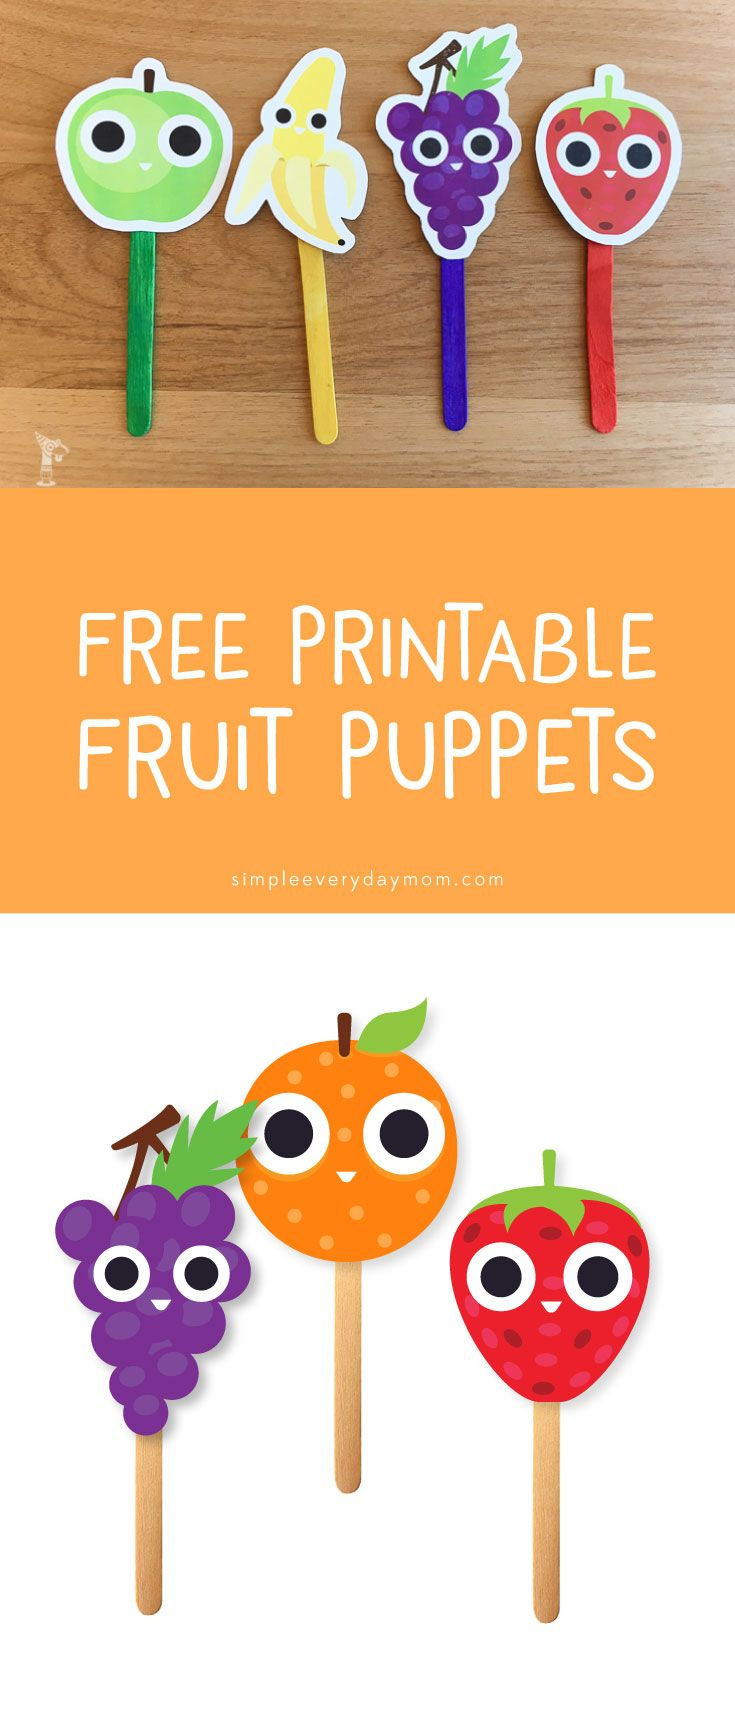 free printables for kids | printable puppets | fruit activity | creative play